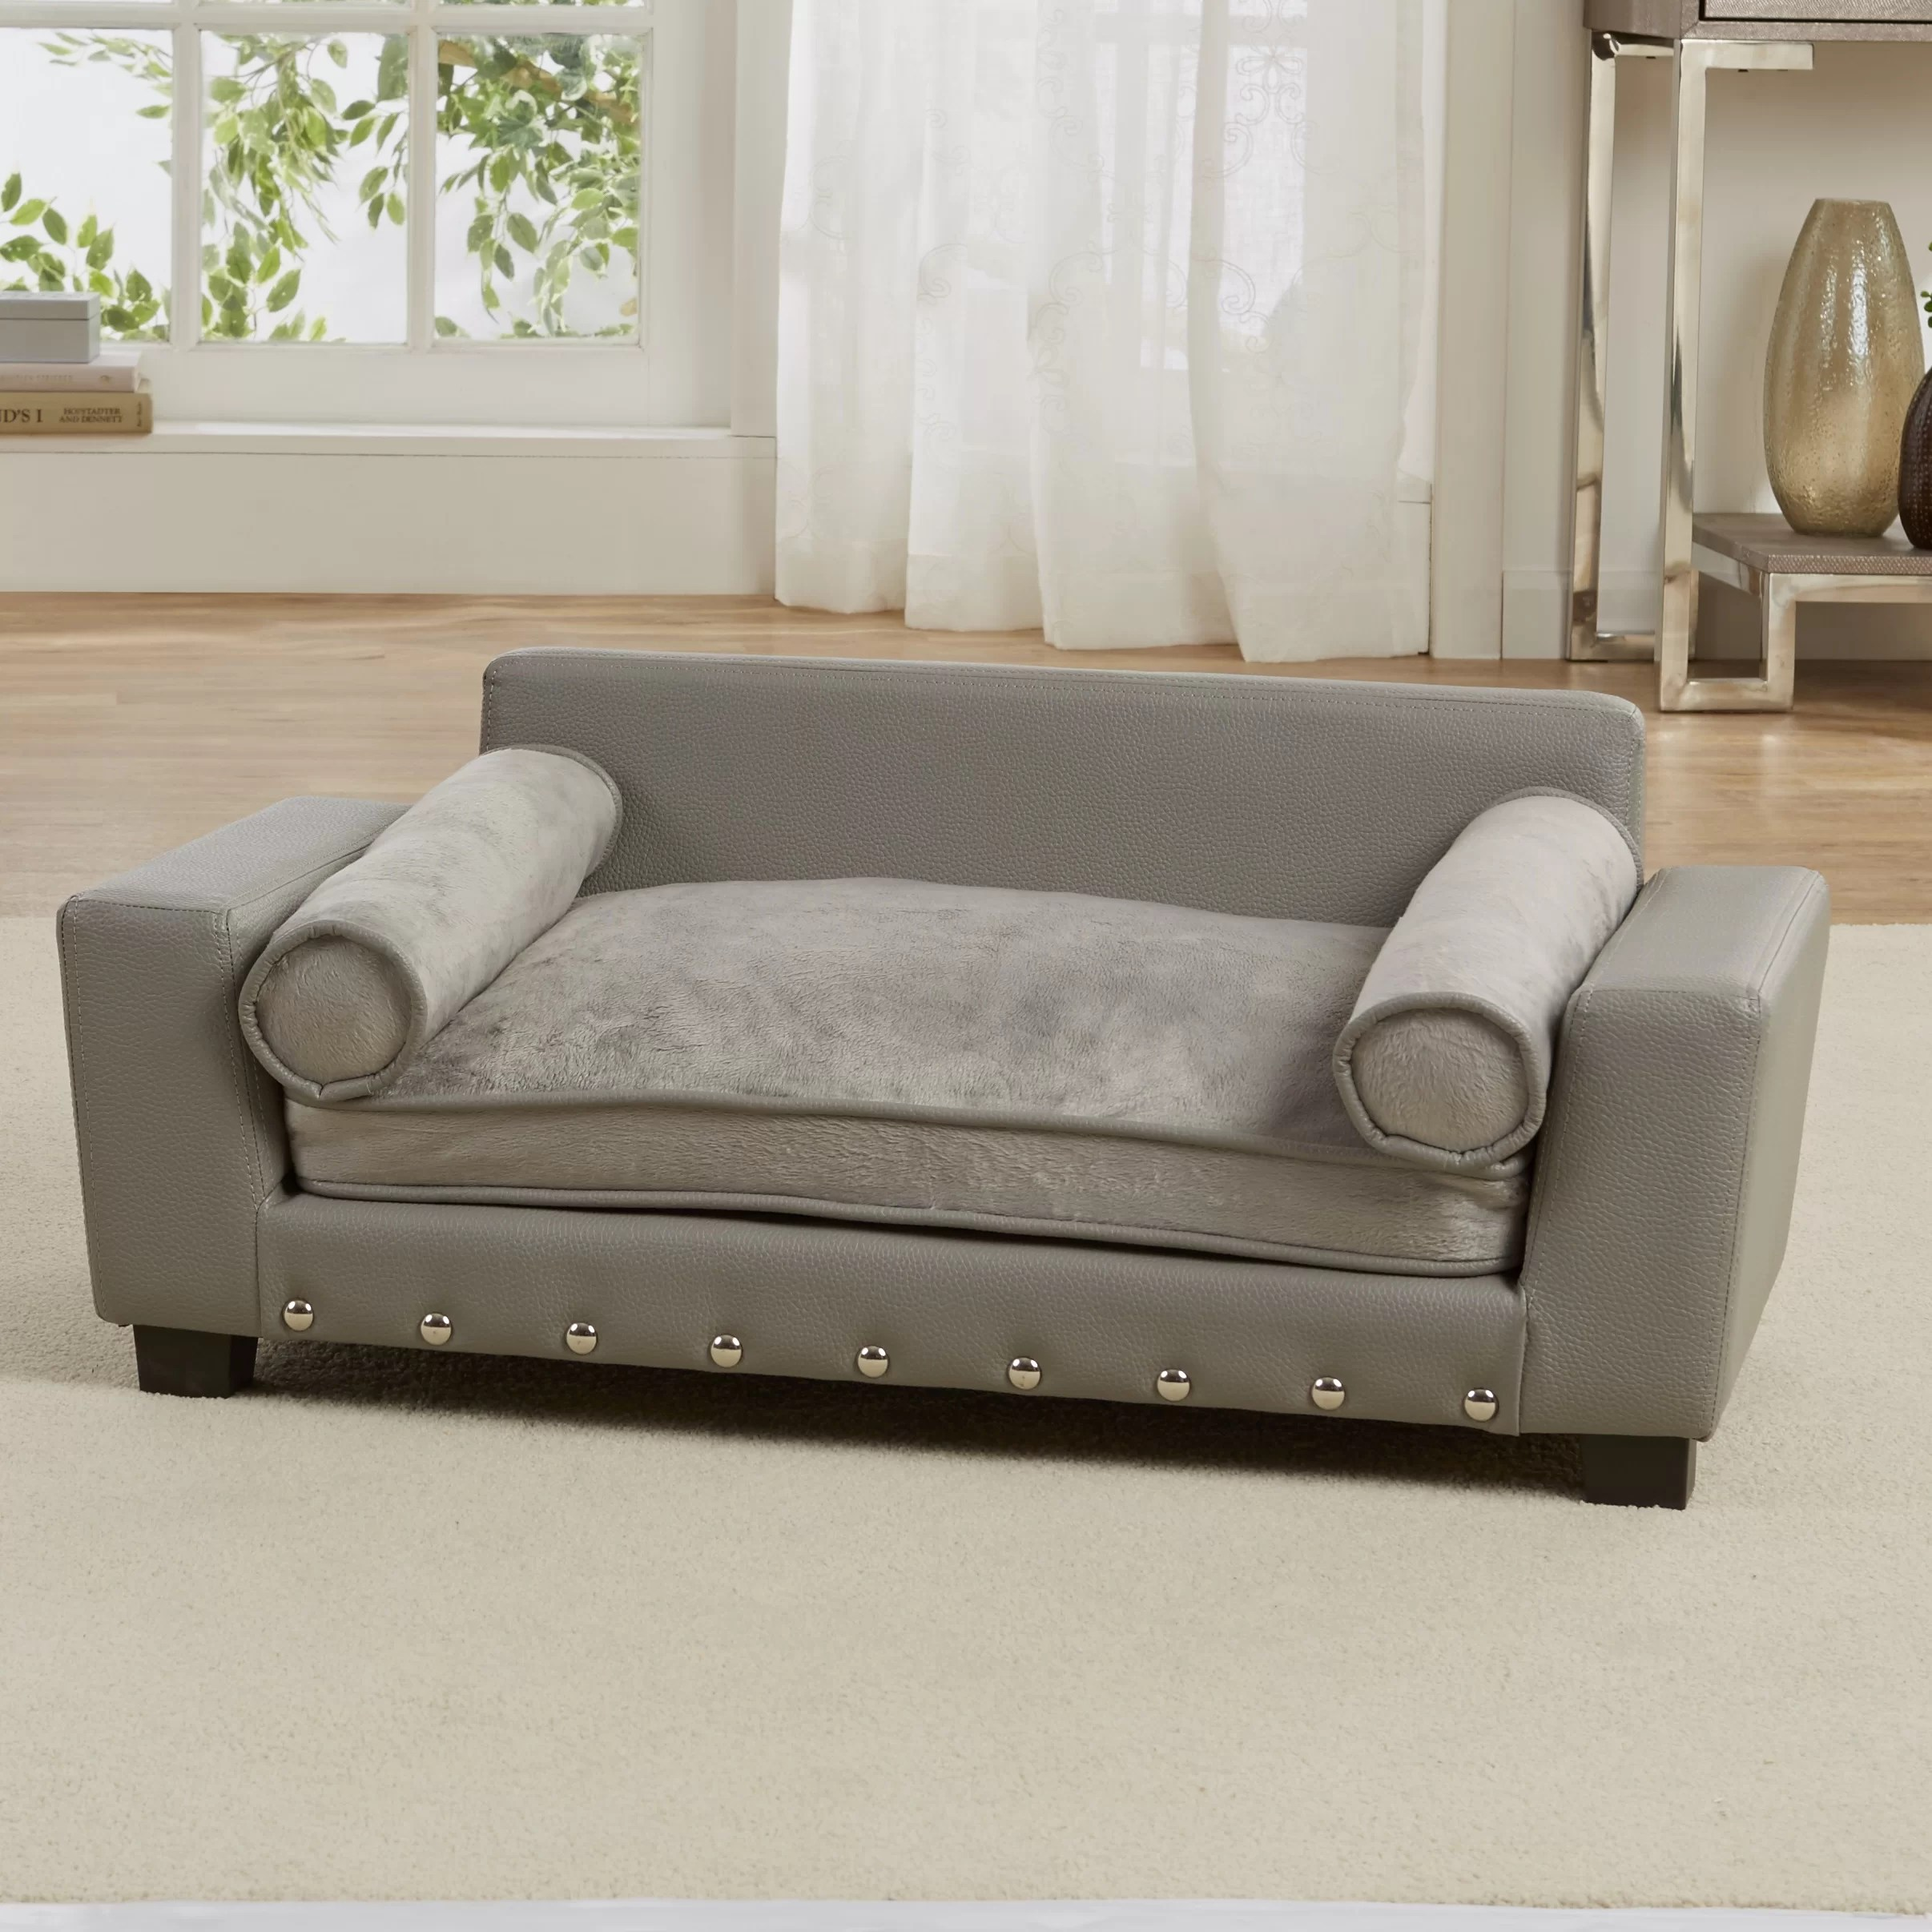 enchanted home mackenzie pet sofa cheap sofas under 400 bootsie scout dog with cushion